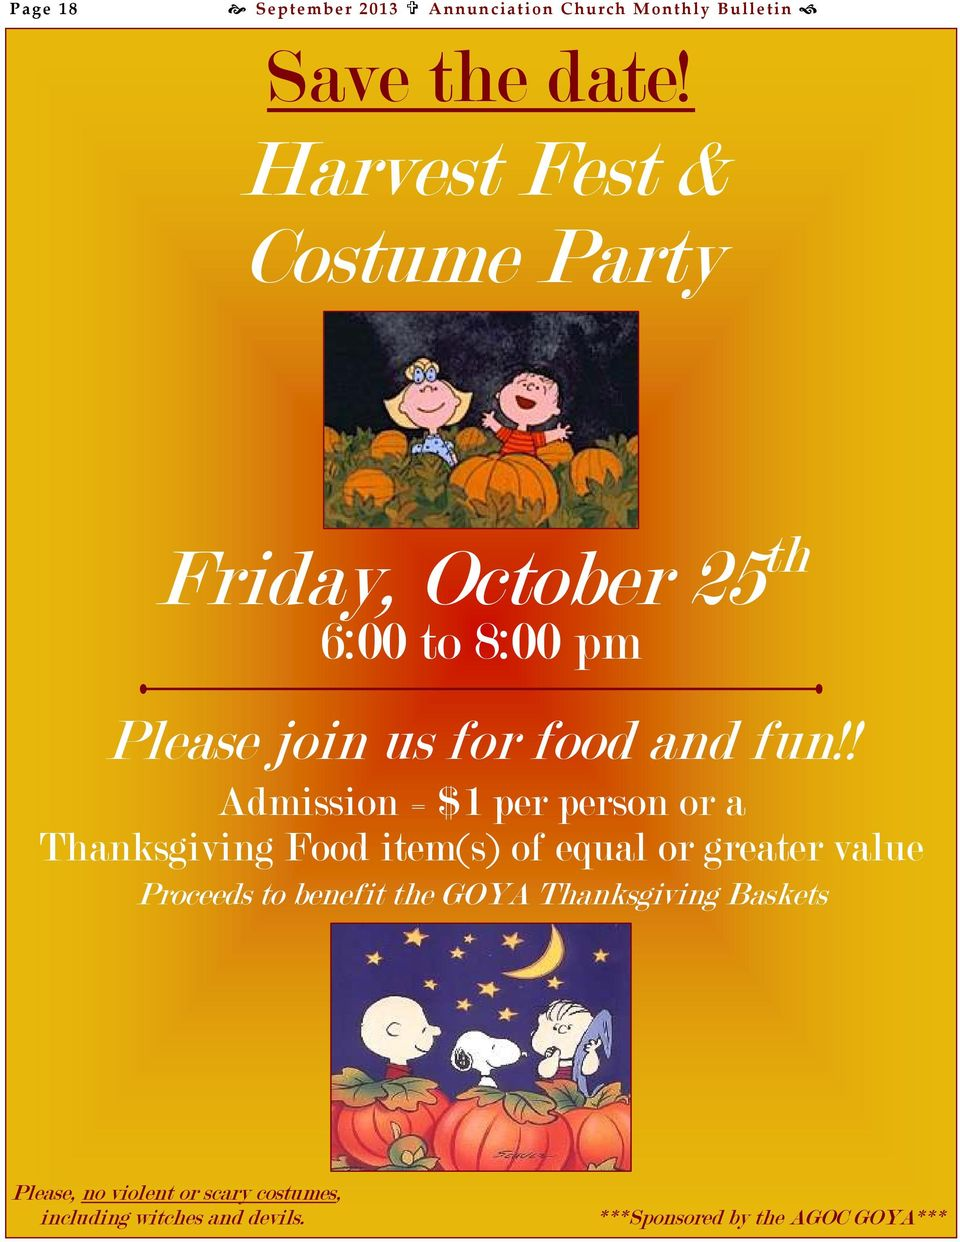 ! Admission = $1 per person or a Thanksgiving Food item(s) of equal or greater value Proceeds to